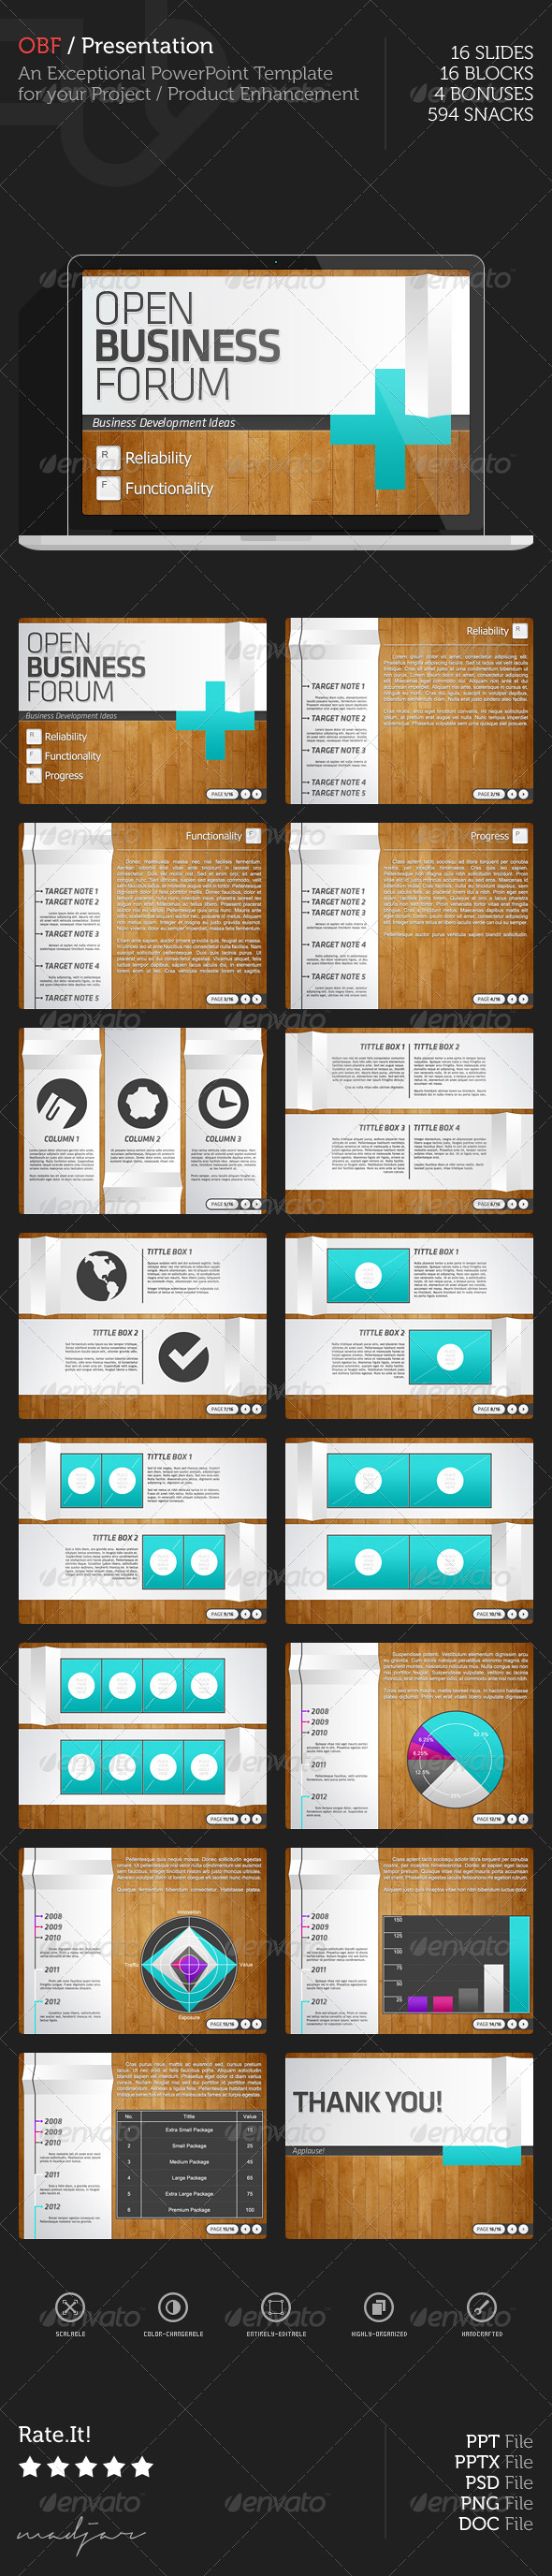 Open Business Forum PowerPoint Presentation - Powerpoint Templates Presentation Templates